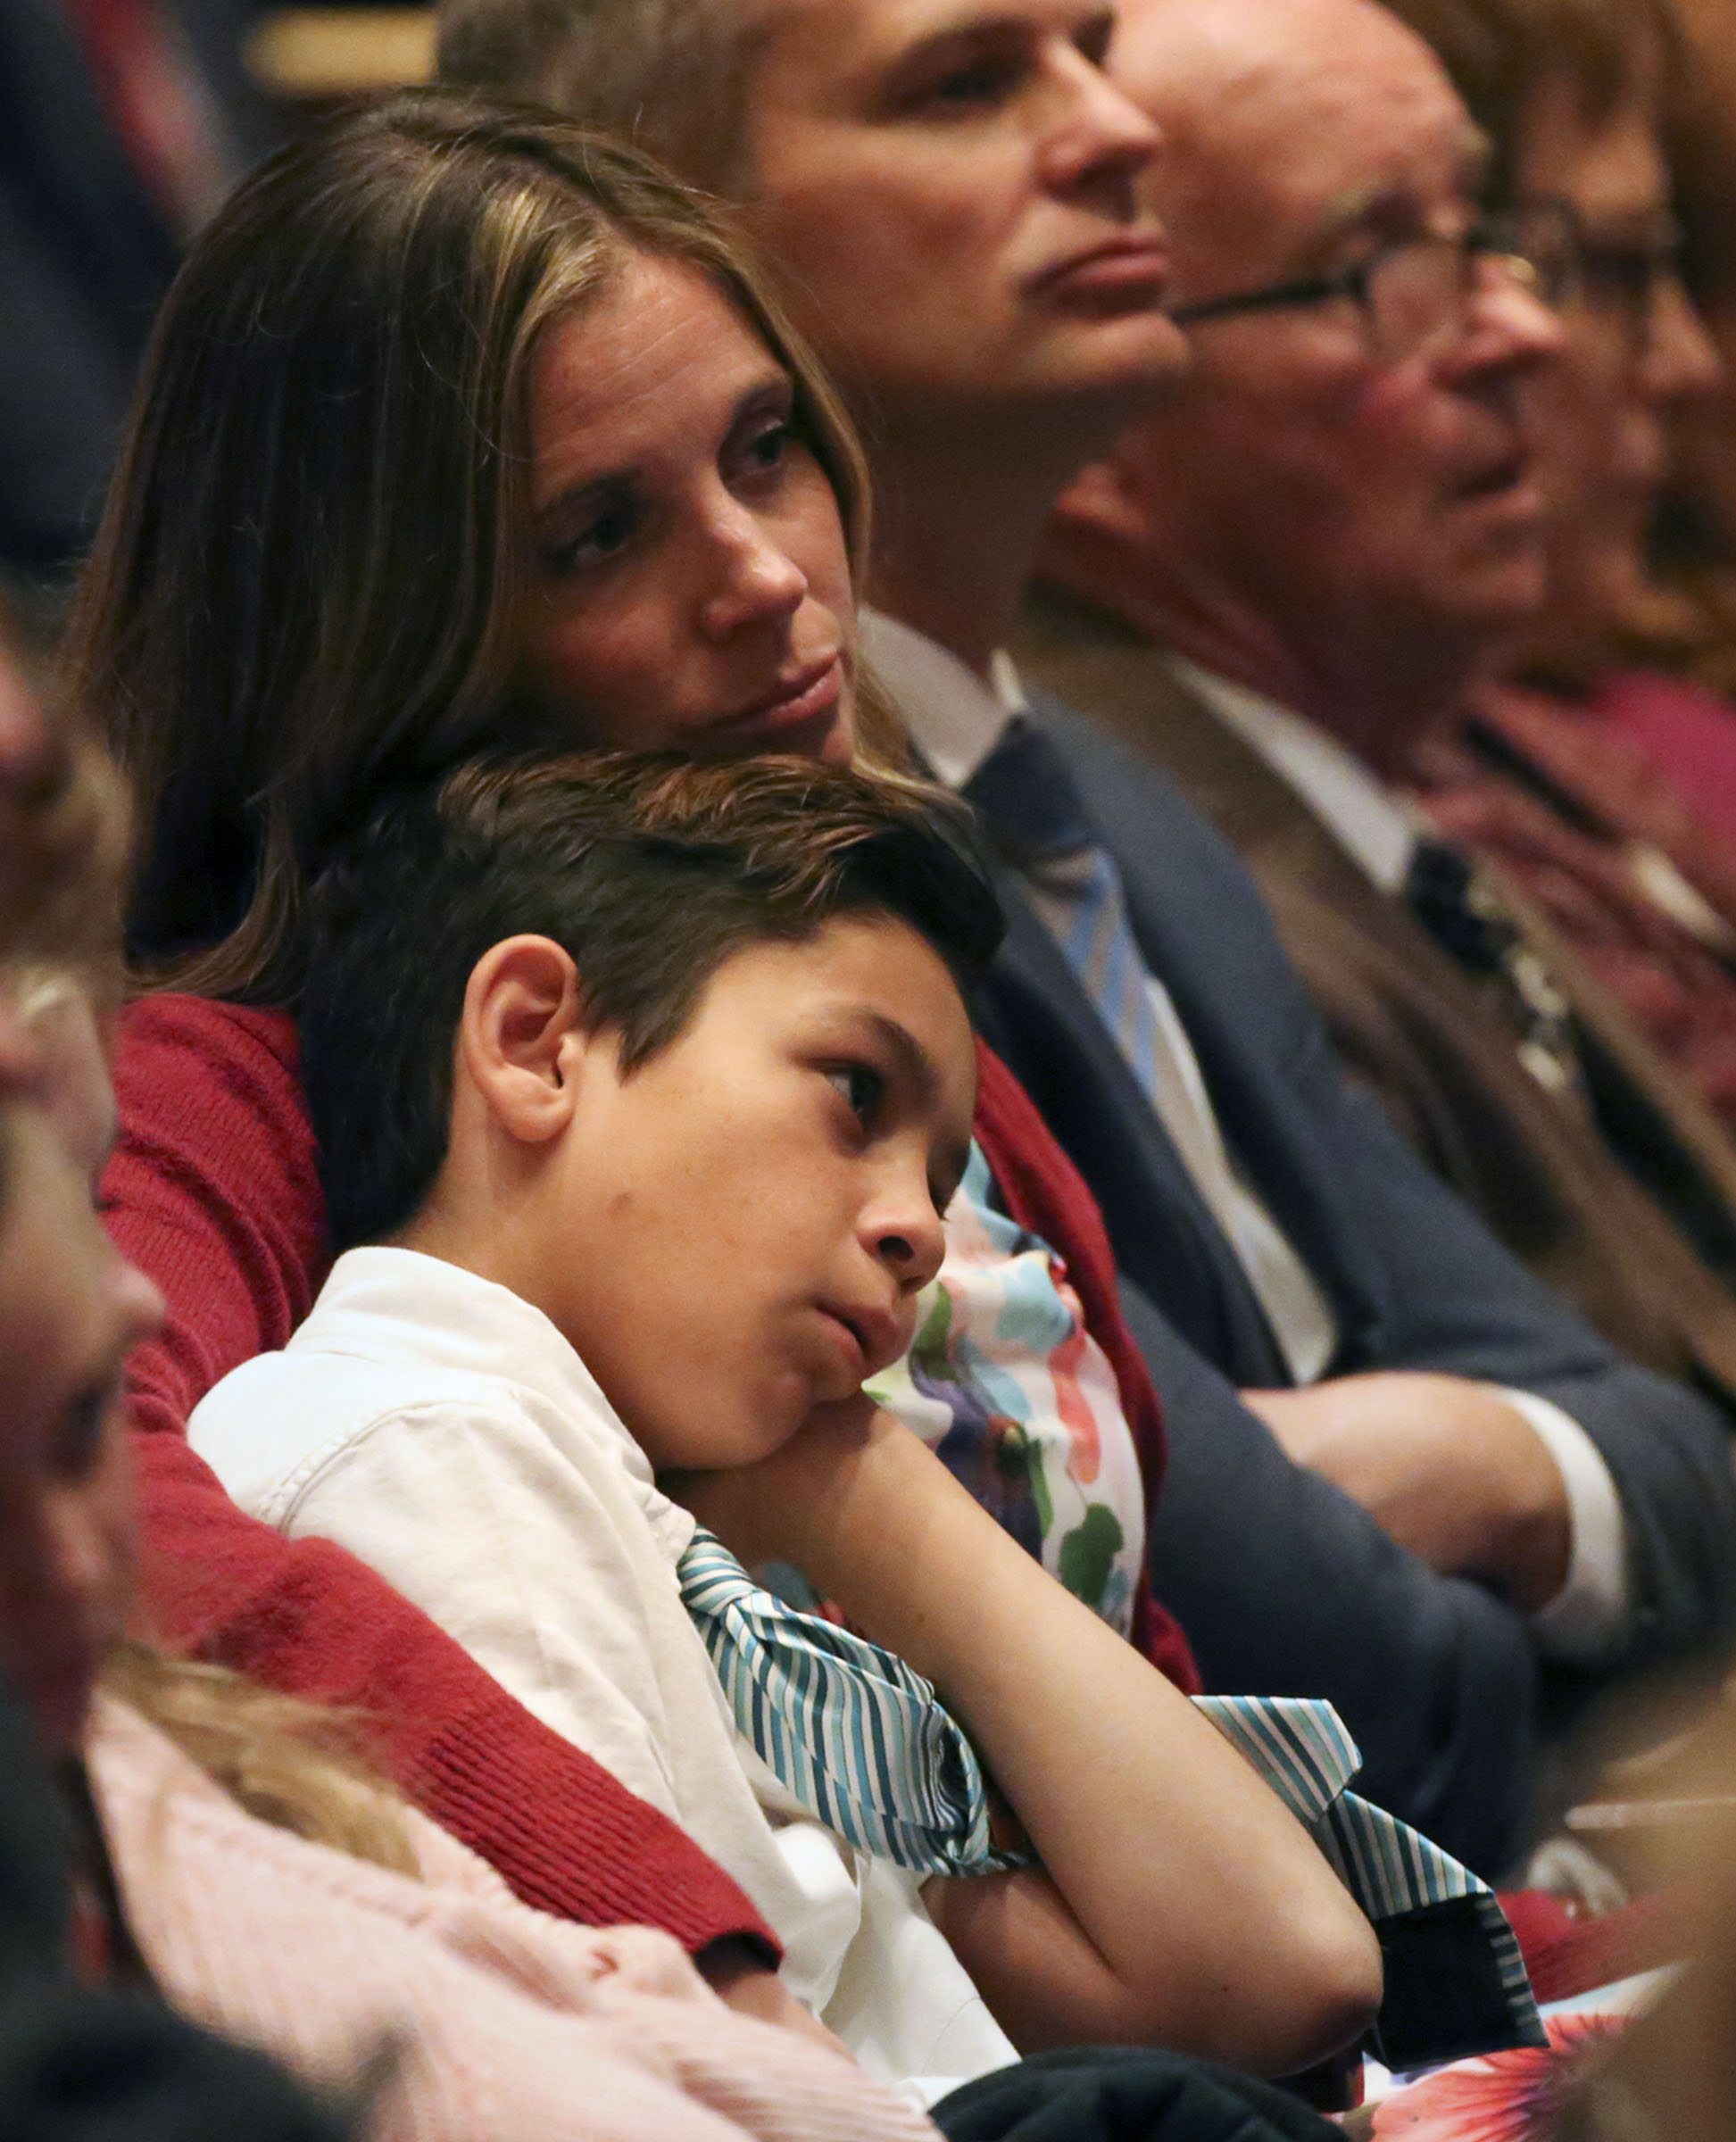 Conferencegoers listen to a speaker during the Sunday afternoon session of the 188th Semiannual General Conference of The Church of Jesus Christ of Latter-day Saints in the Conference Center in downtown Salt Lake City on Sunday, Oct. 7, 2018.